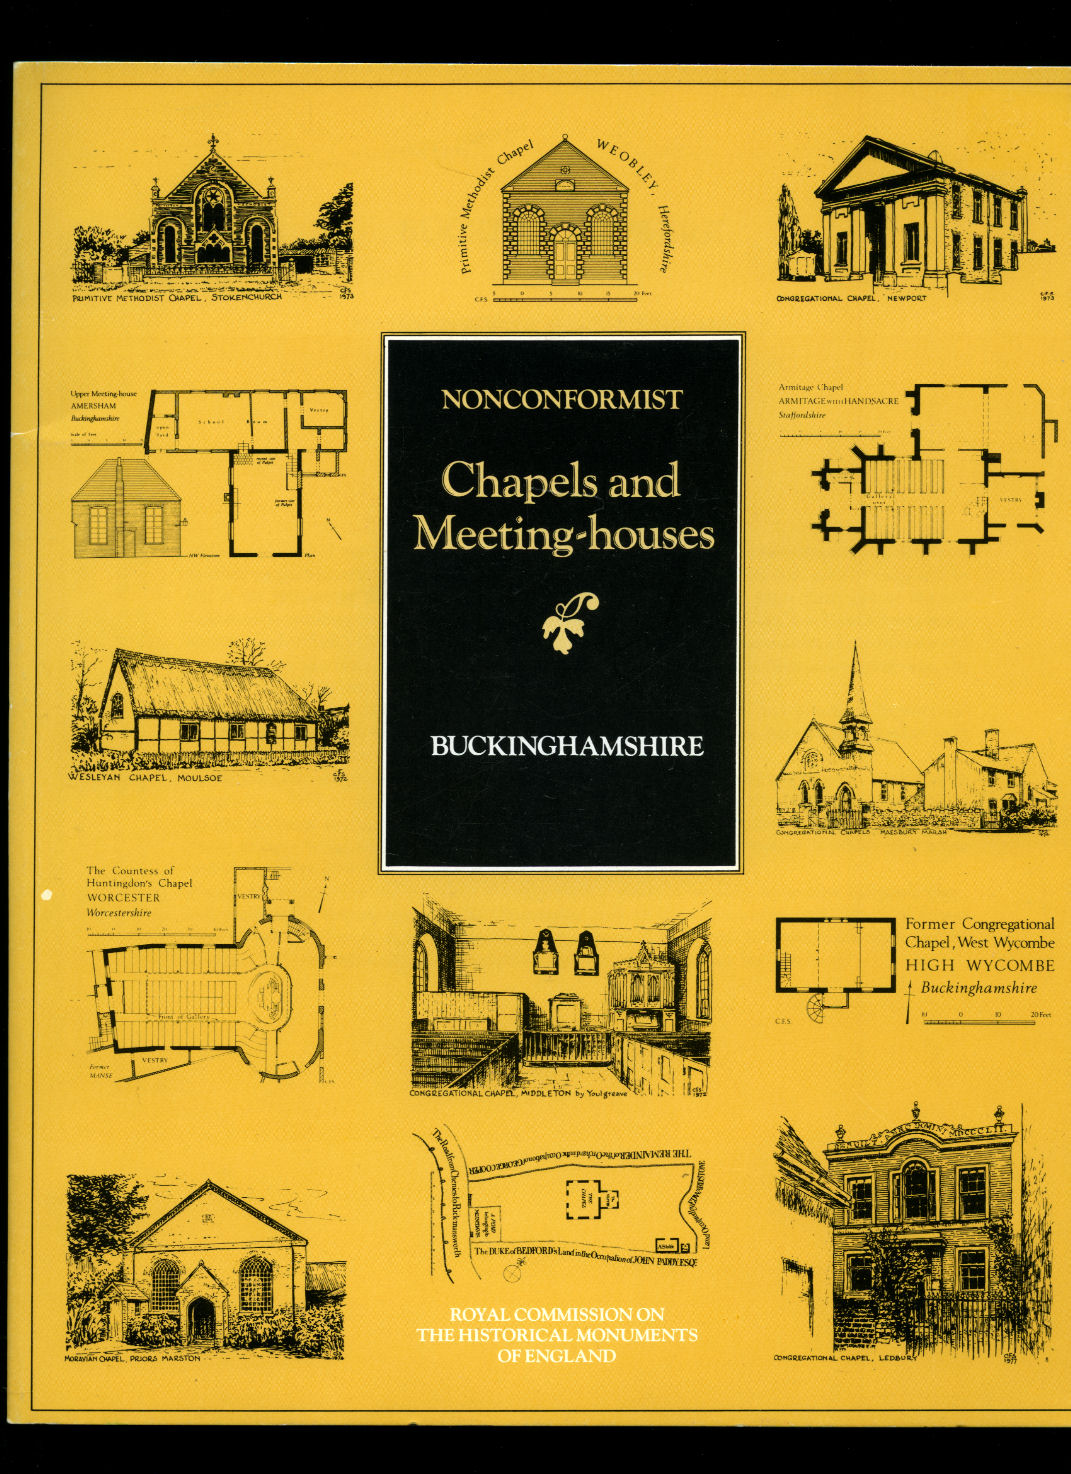 STELL, CHRISTOPHER [ROYAL COMMISSION ON THE HISTORICAL MONUMENTS OF ENGLAND] - Inventory of Nonconformist Chapels and Meeting Houses in Central England | Buckinghamshire